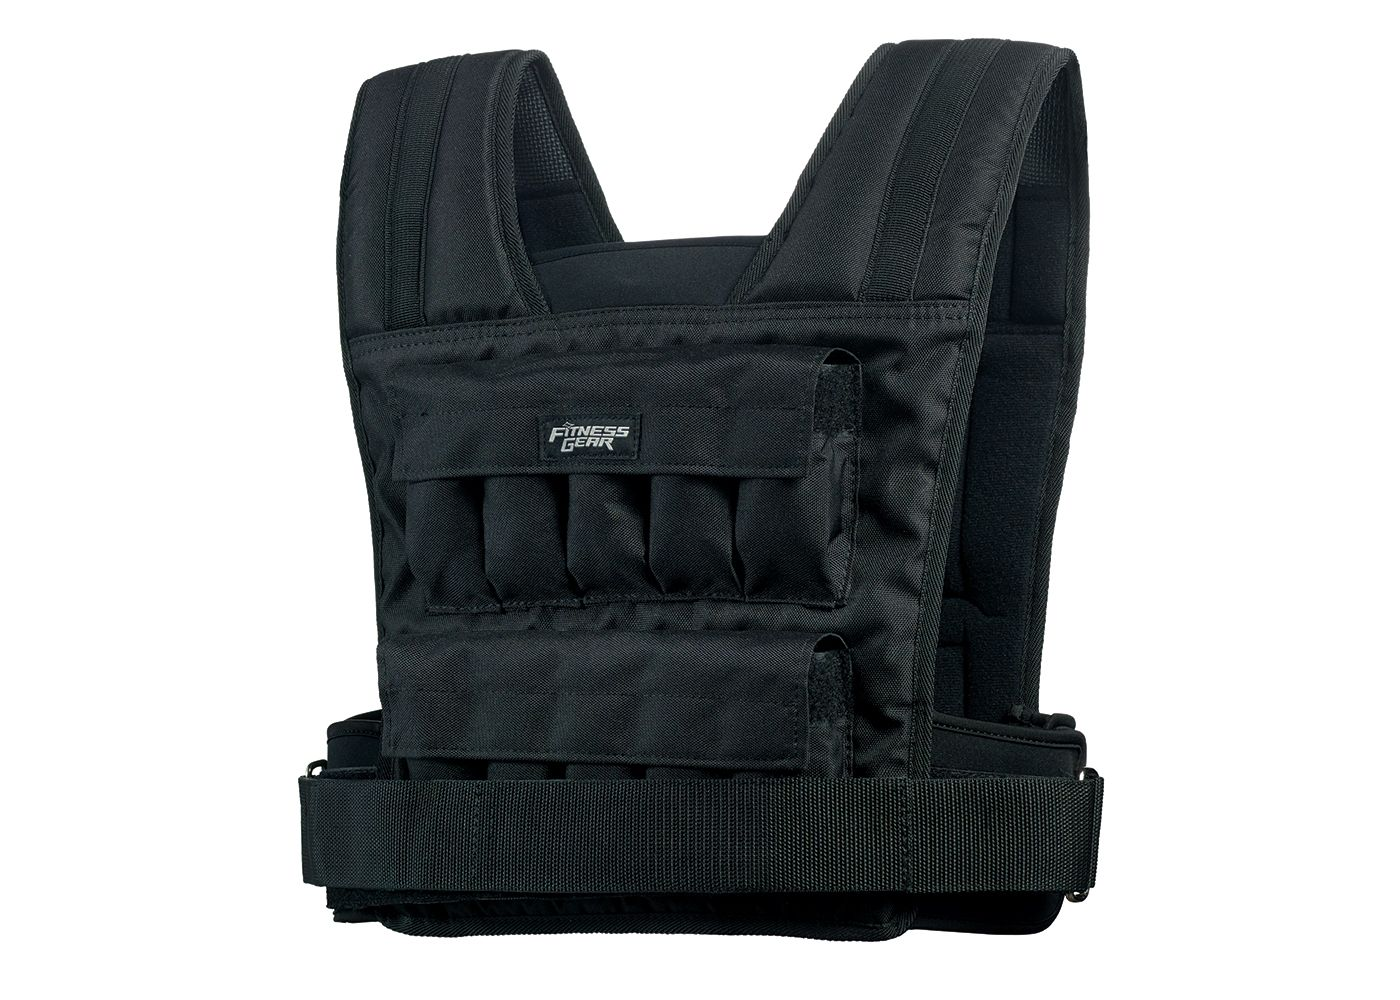 Fitness Gear 40 lb. Weighted Vest